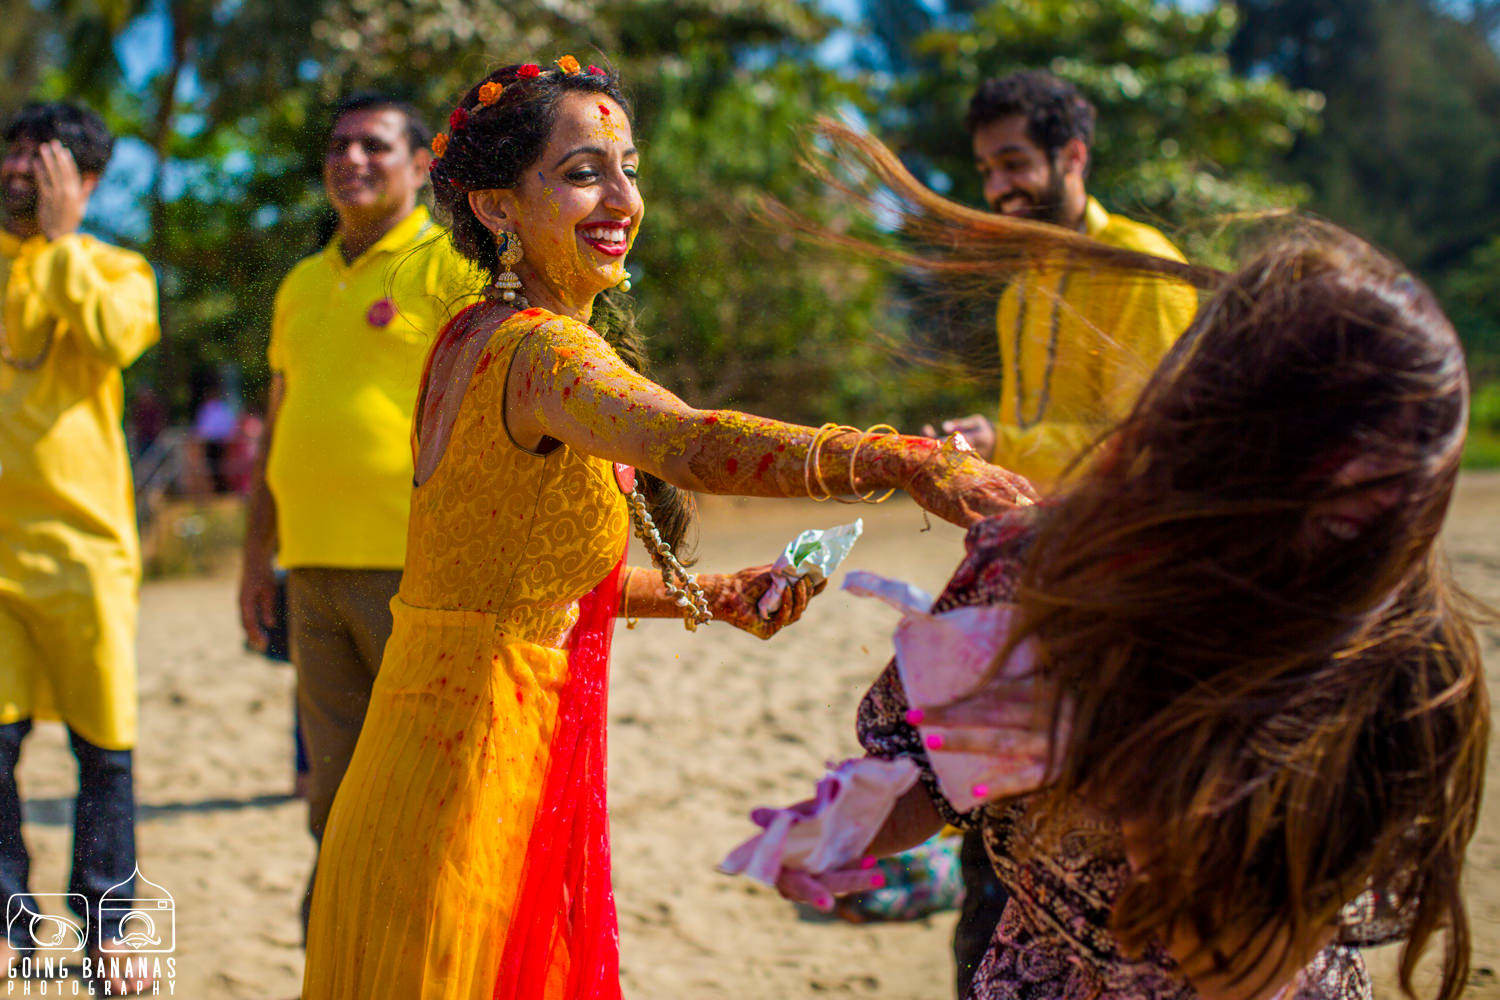 the haldi ceremony!:manyavar, going bananas photography, makeovers by sukanya, design tuk tuk